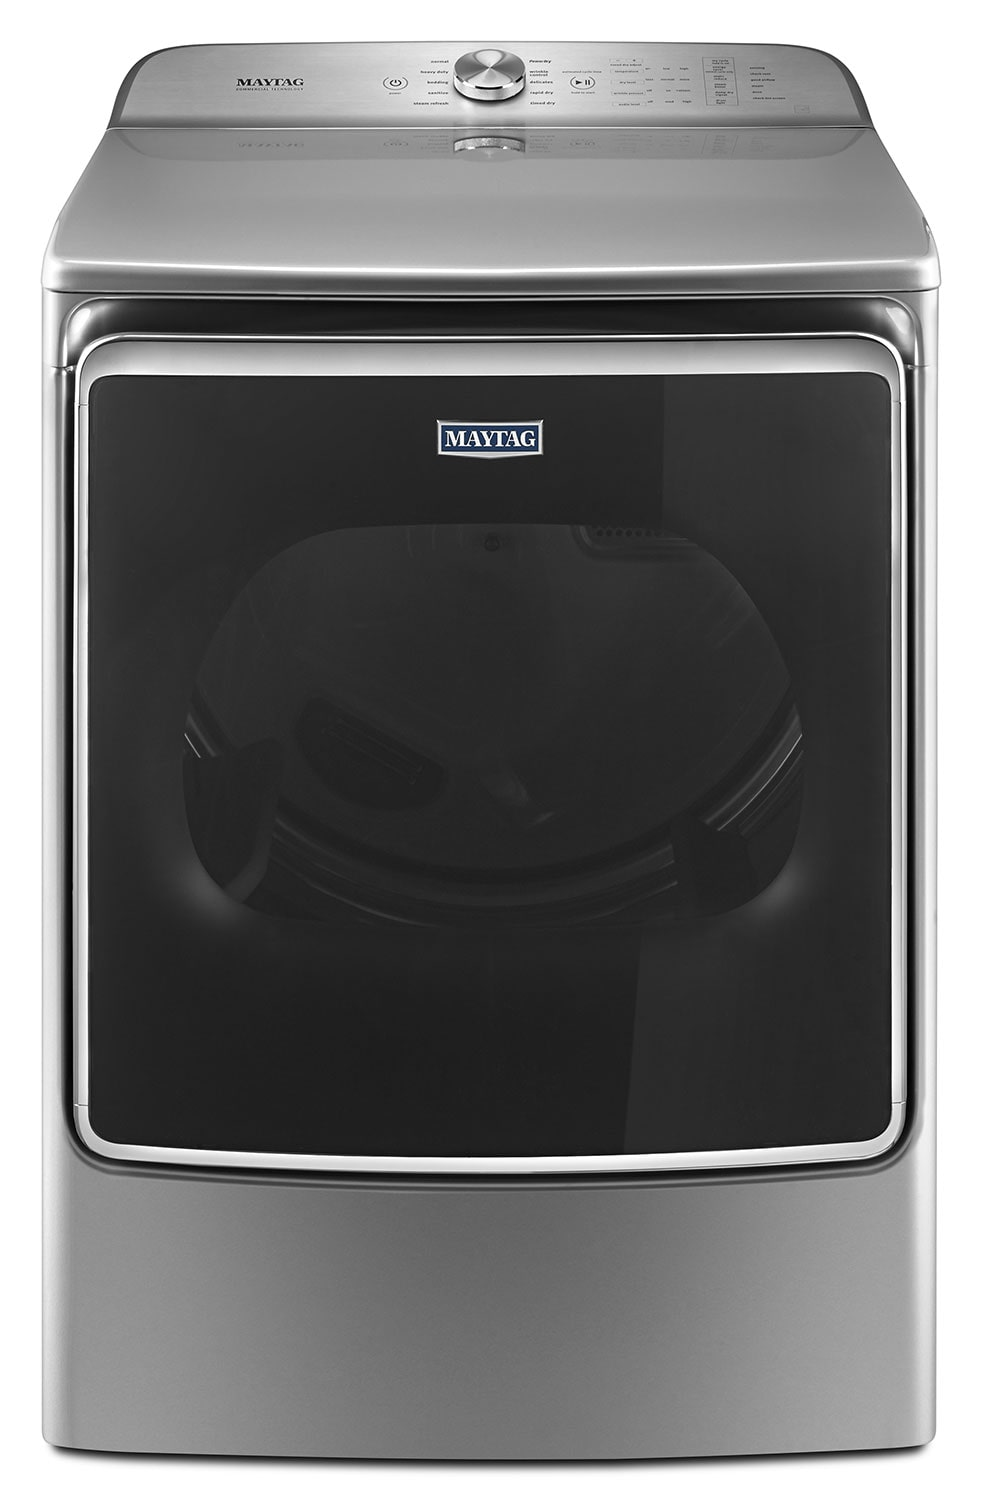 Maytag 9.2 Cu. Ft. Electric Dryer – YMEDB955FC